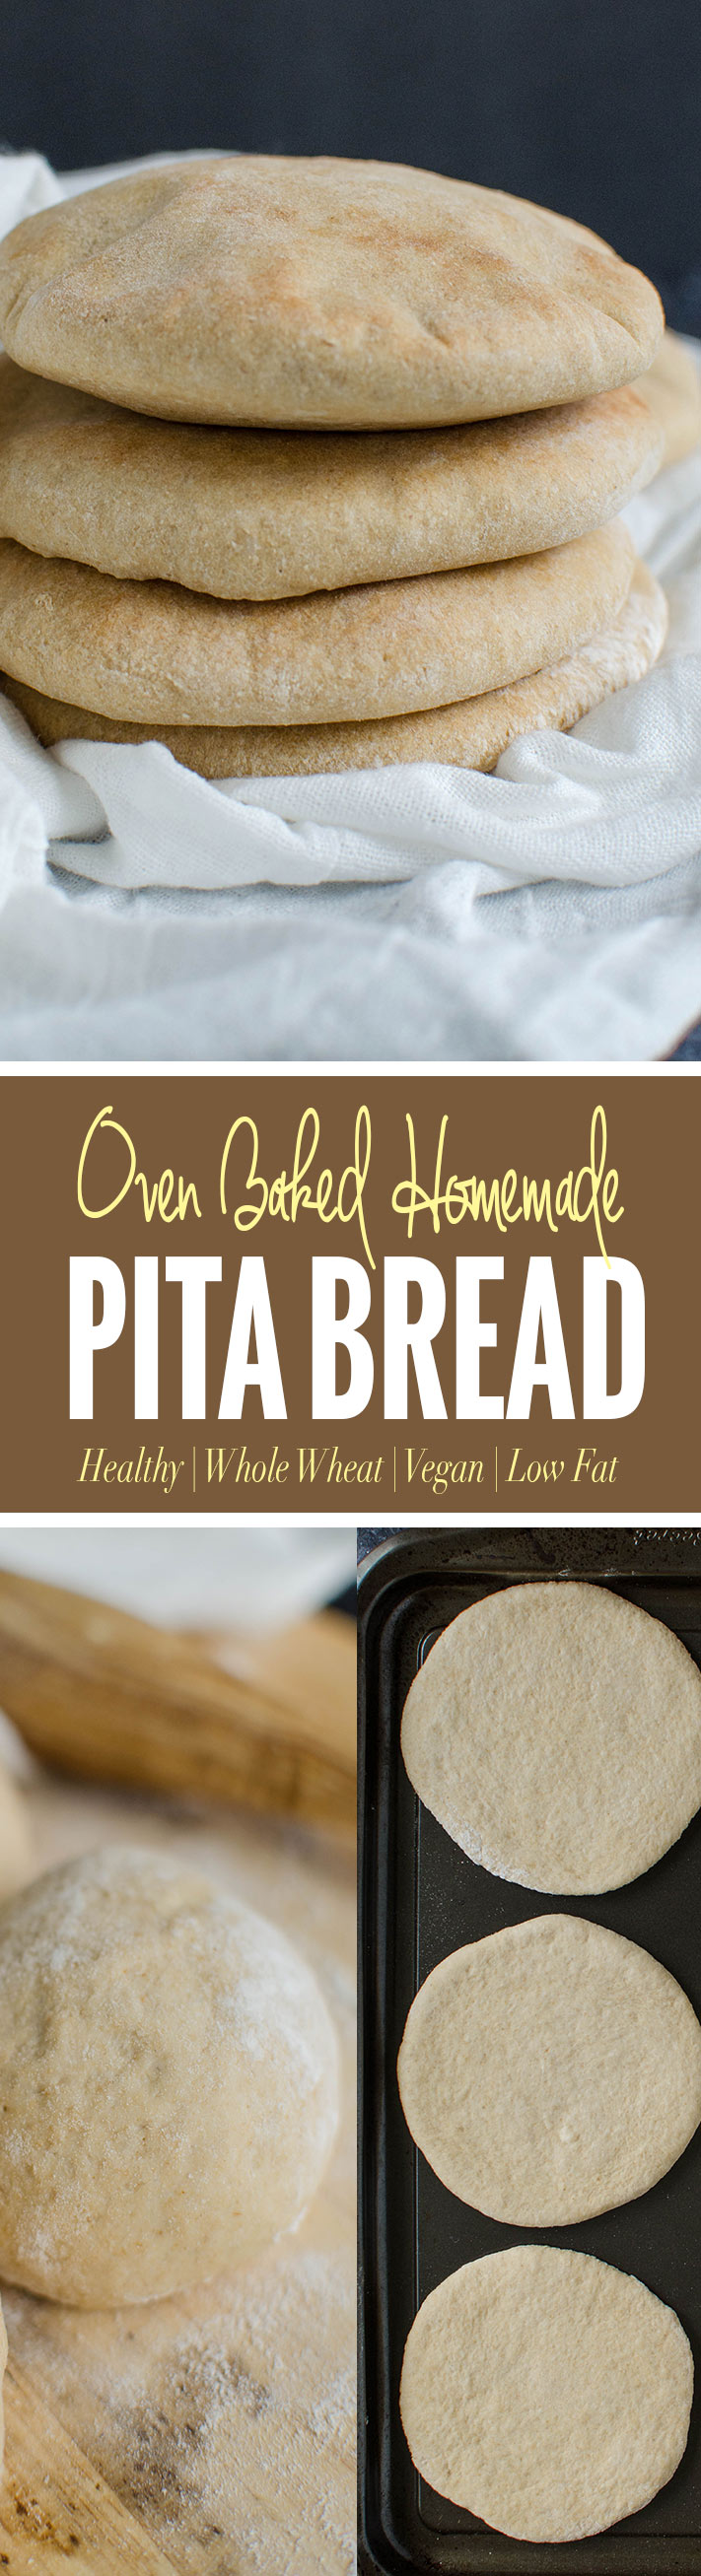 Whole wheat pita bread to pair with homemade hummus, Mediterranean salads etc. You can also make falafel sandwich or turn them into pita chips